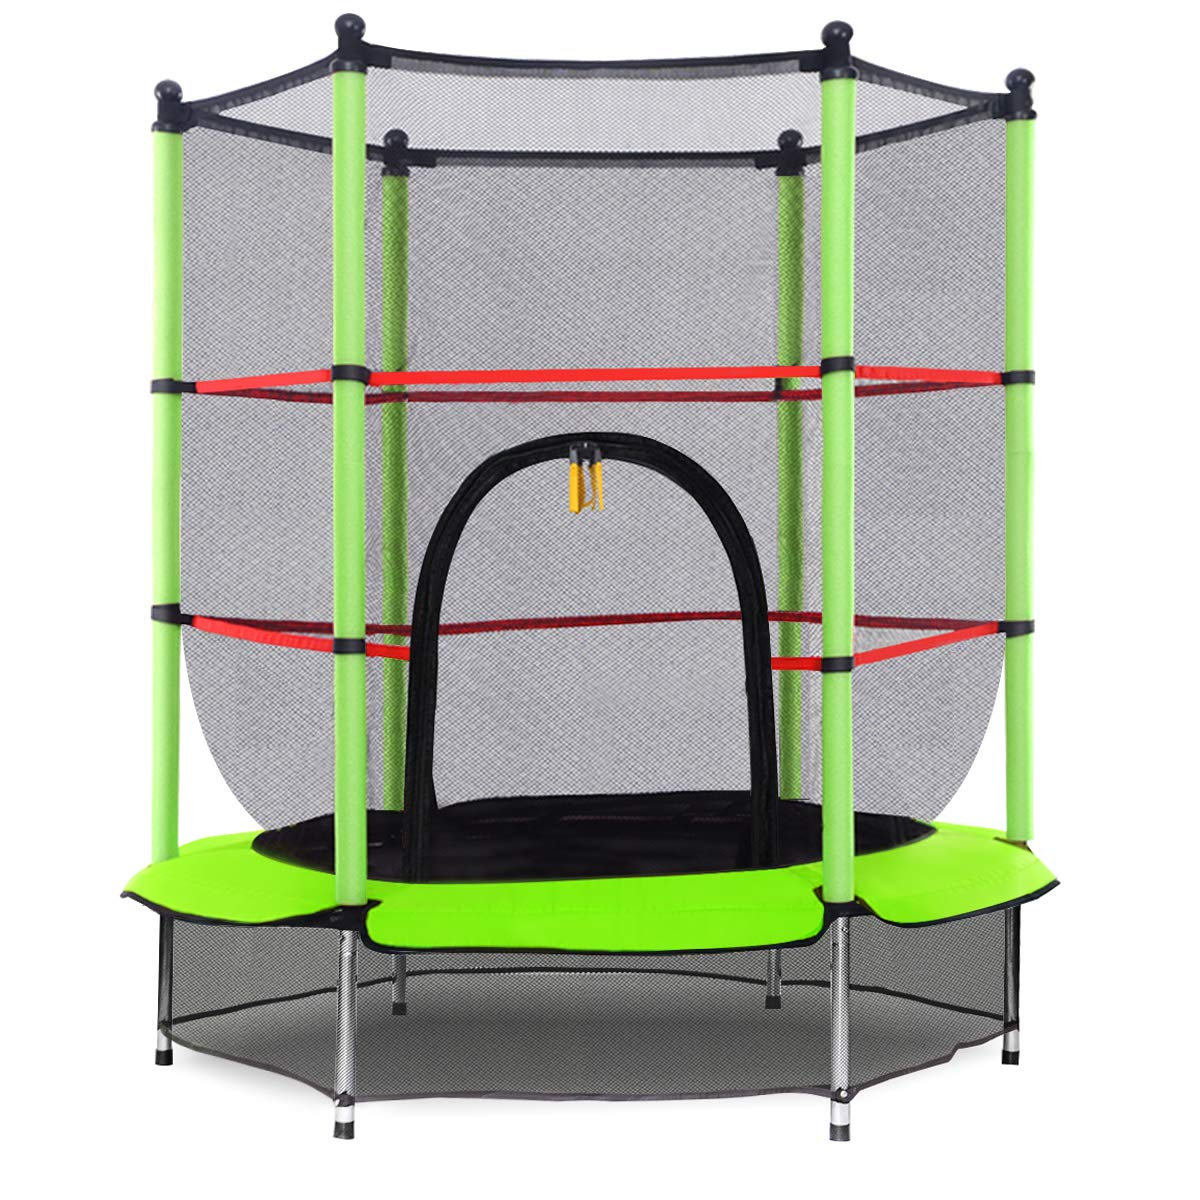 Giantex 55'' Round Kids Mini Jumping Trampoline W/Safety Pad Enclosure Combo (Green) by Giantex